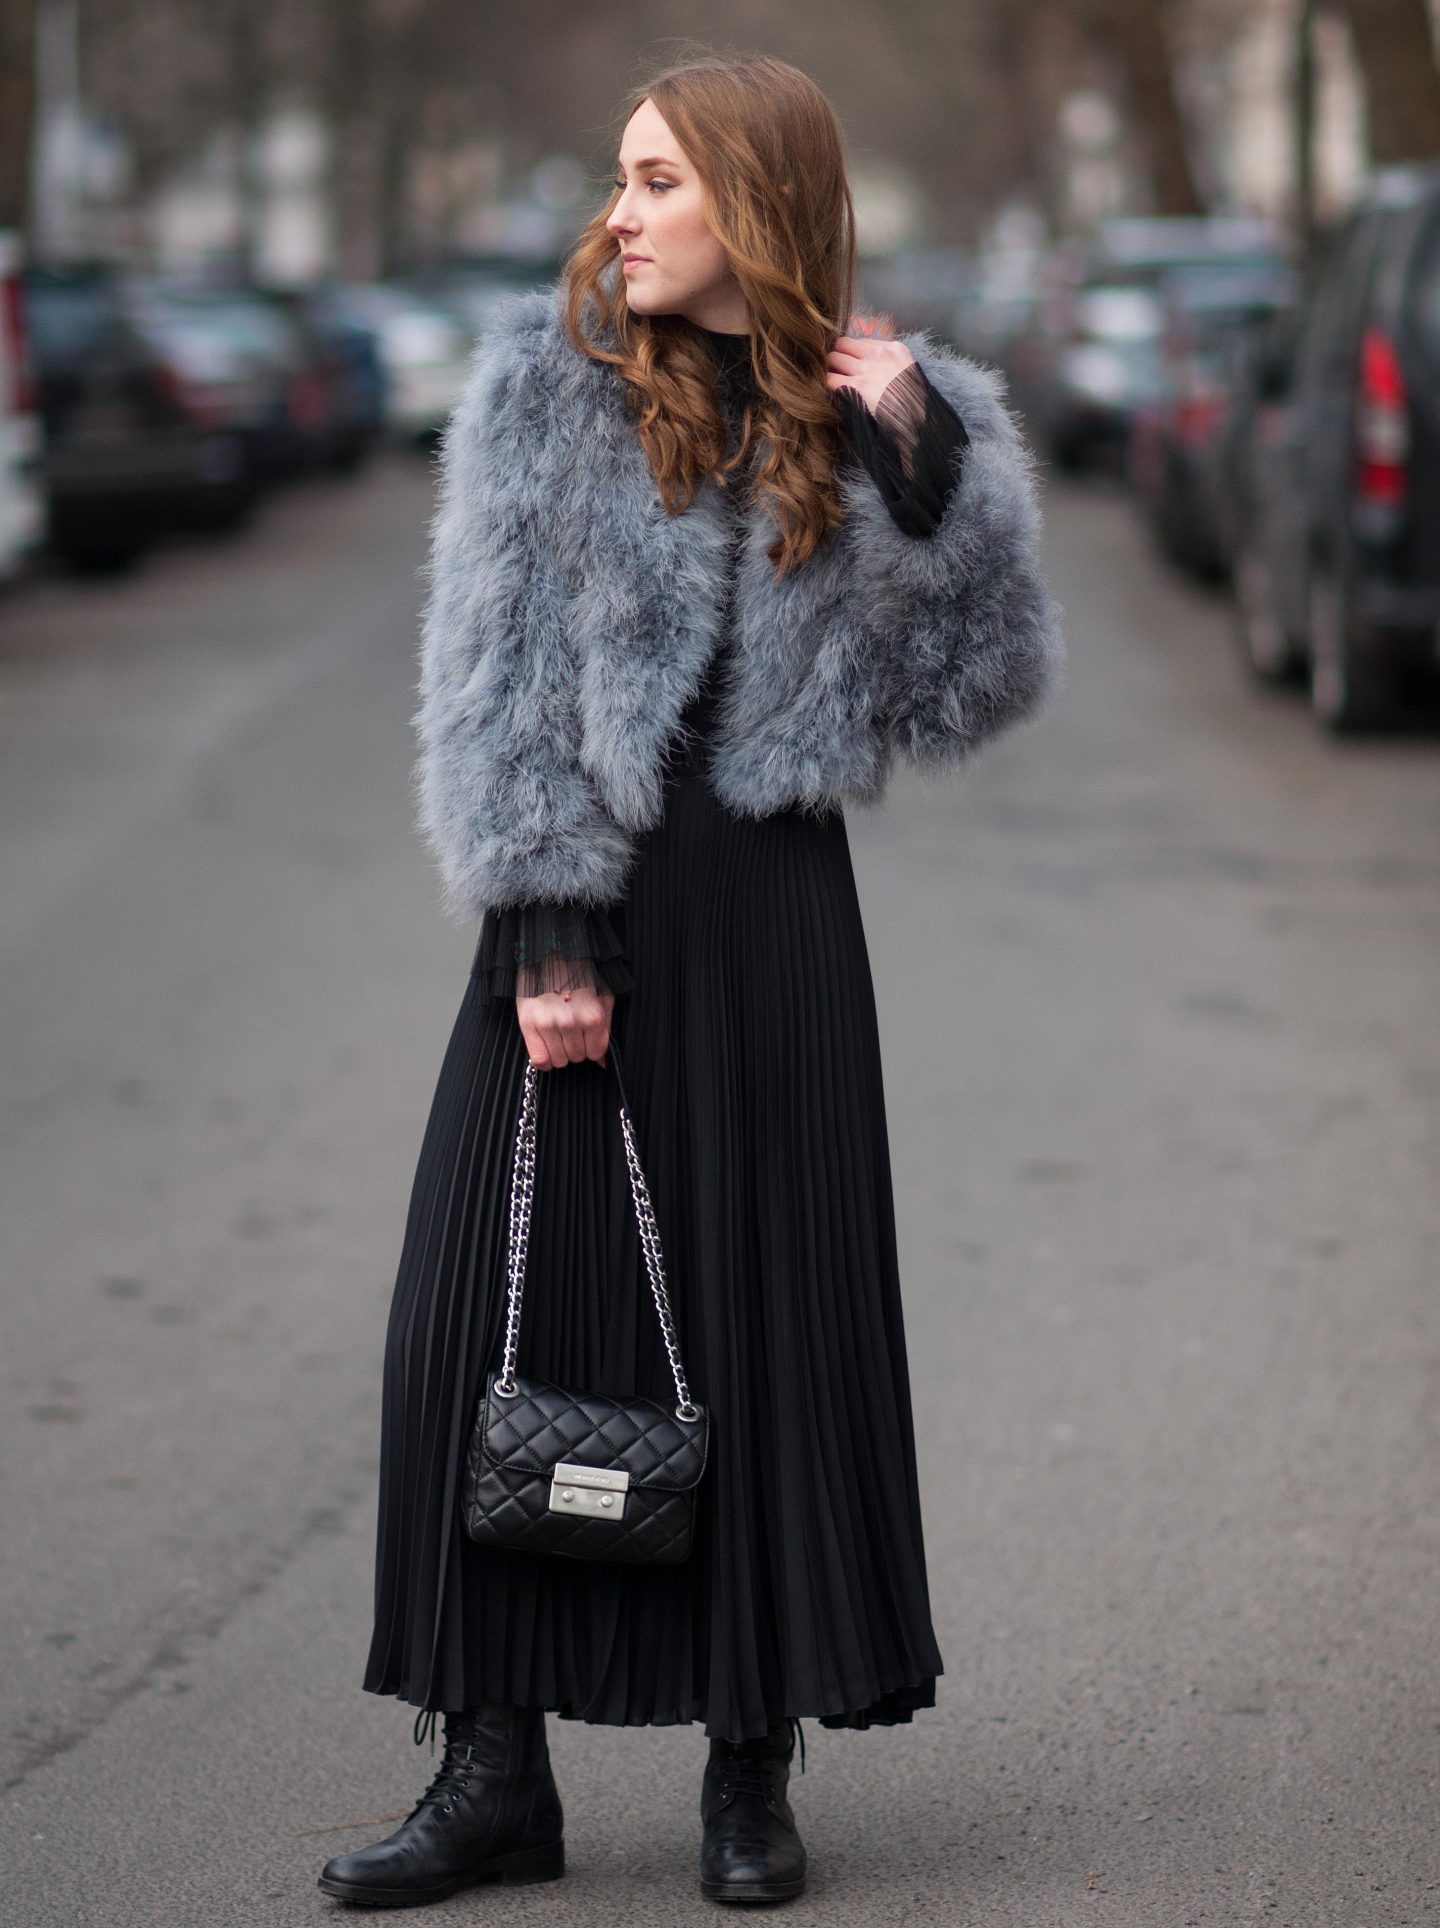 MBFW Outfit - 11